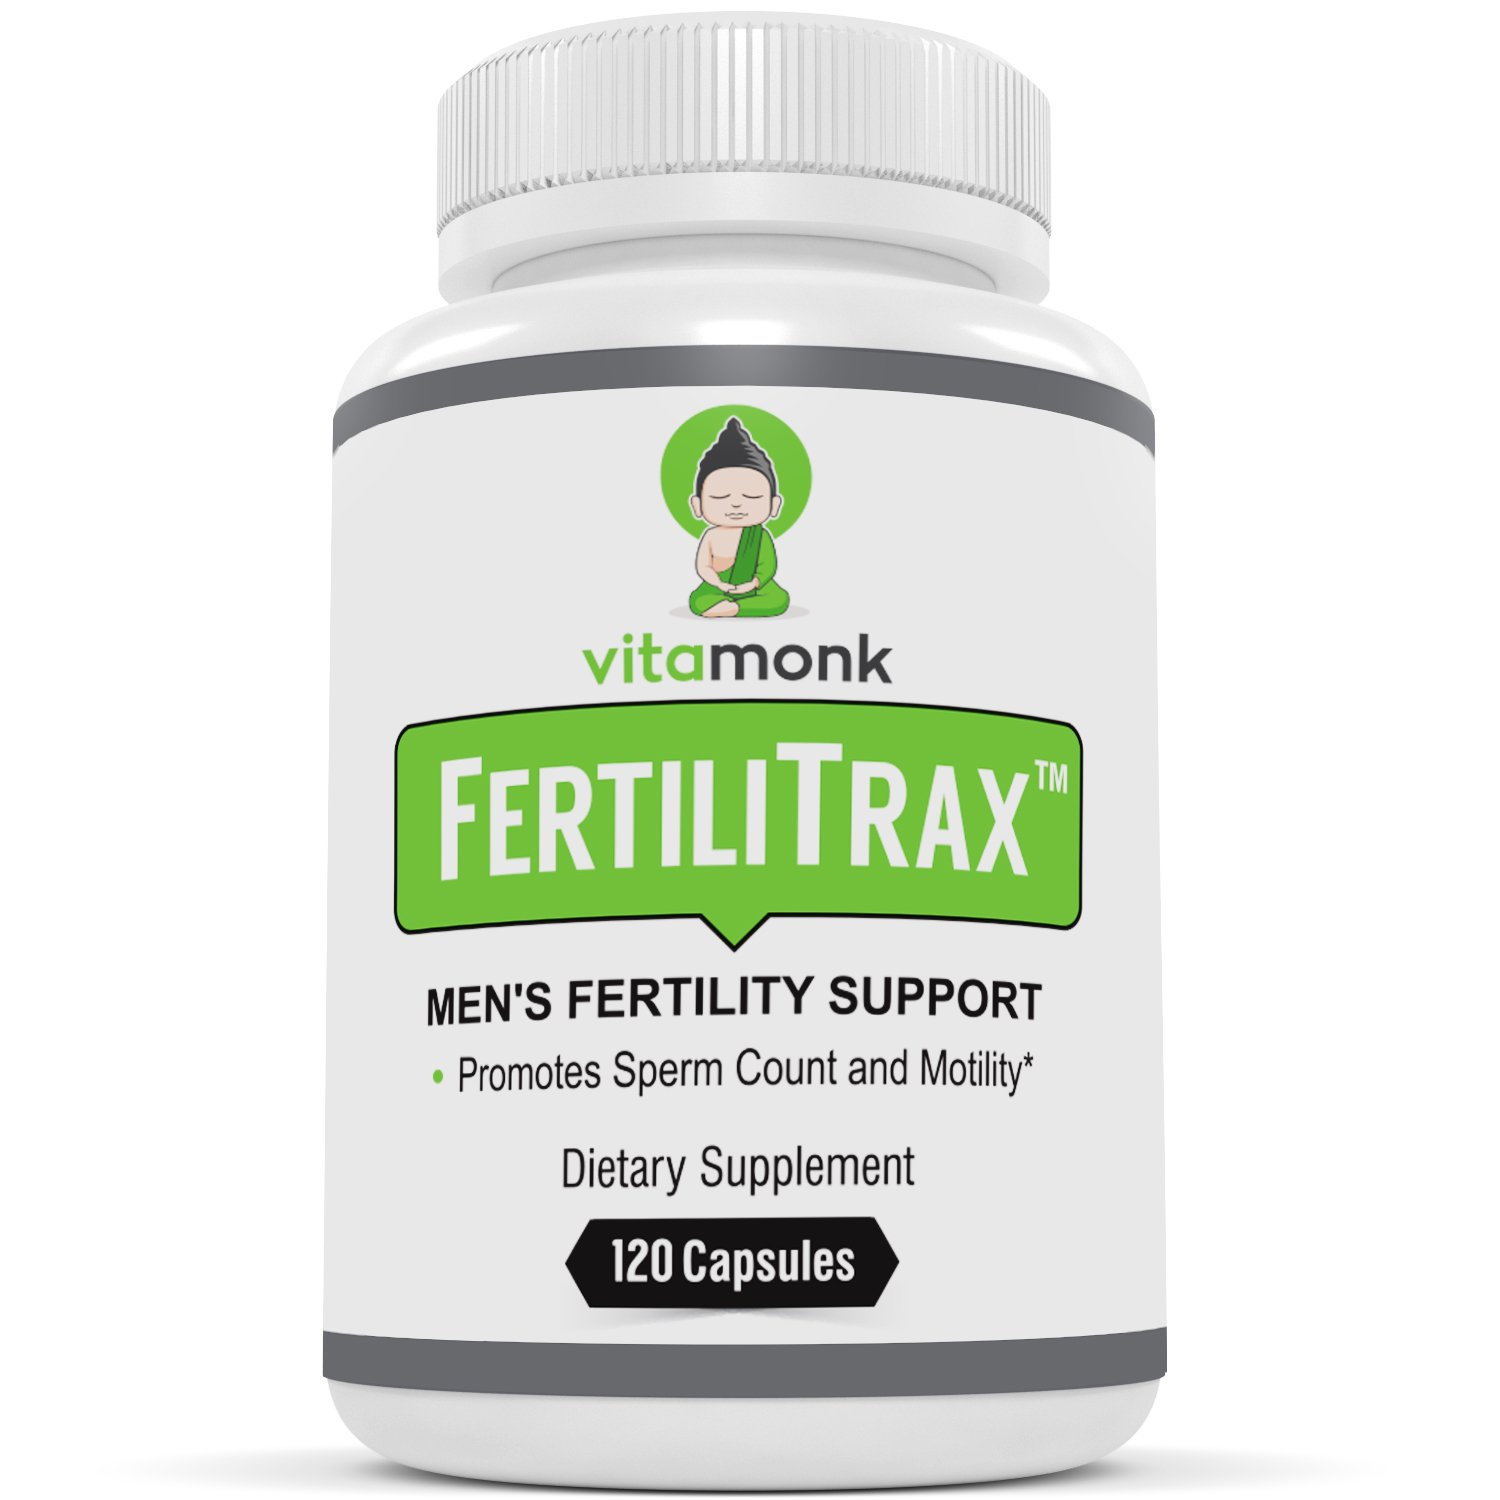 FertiliTrax Men s Fertility Support – Fertility Blend for Men by VitaMonk – Effective Natural Supplements Formula to Aid Healthy Fertility for Males – 120 Capsules – Natural Supplement